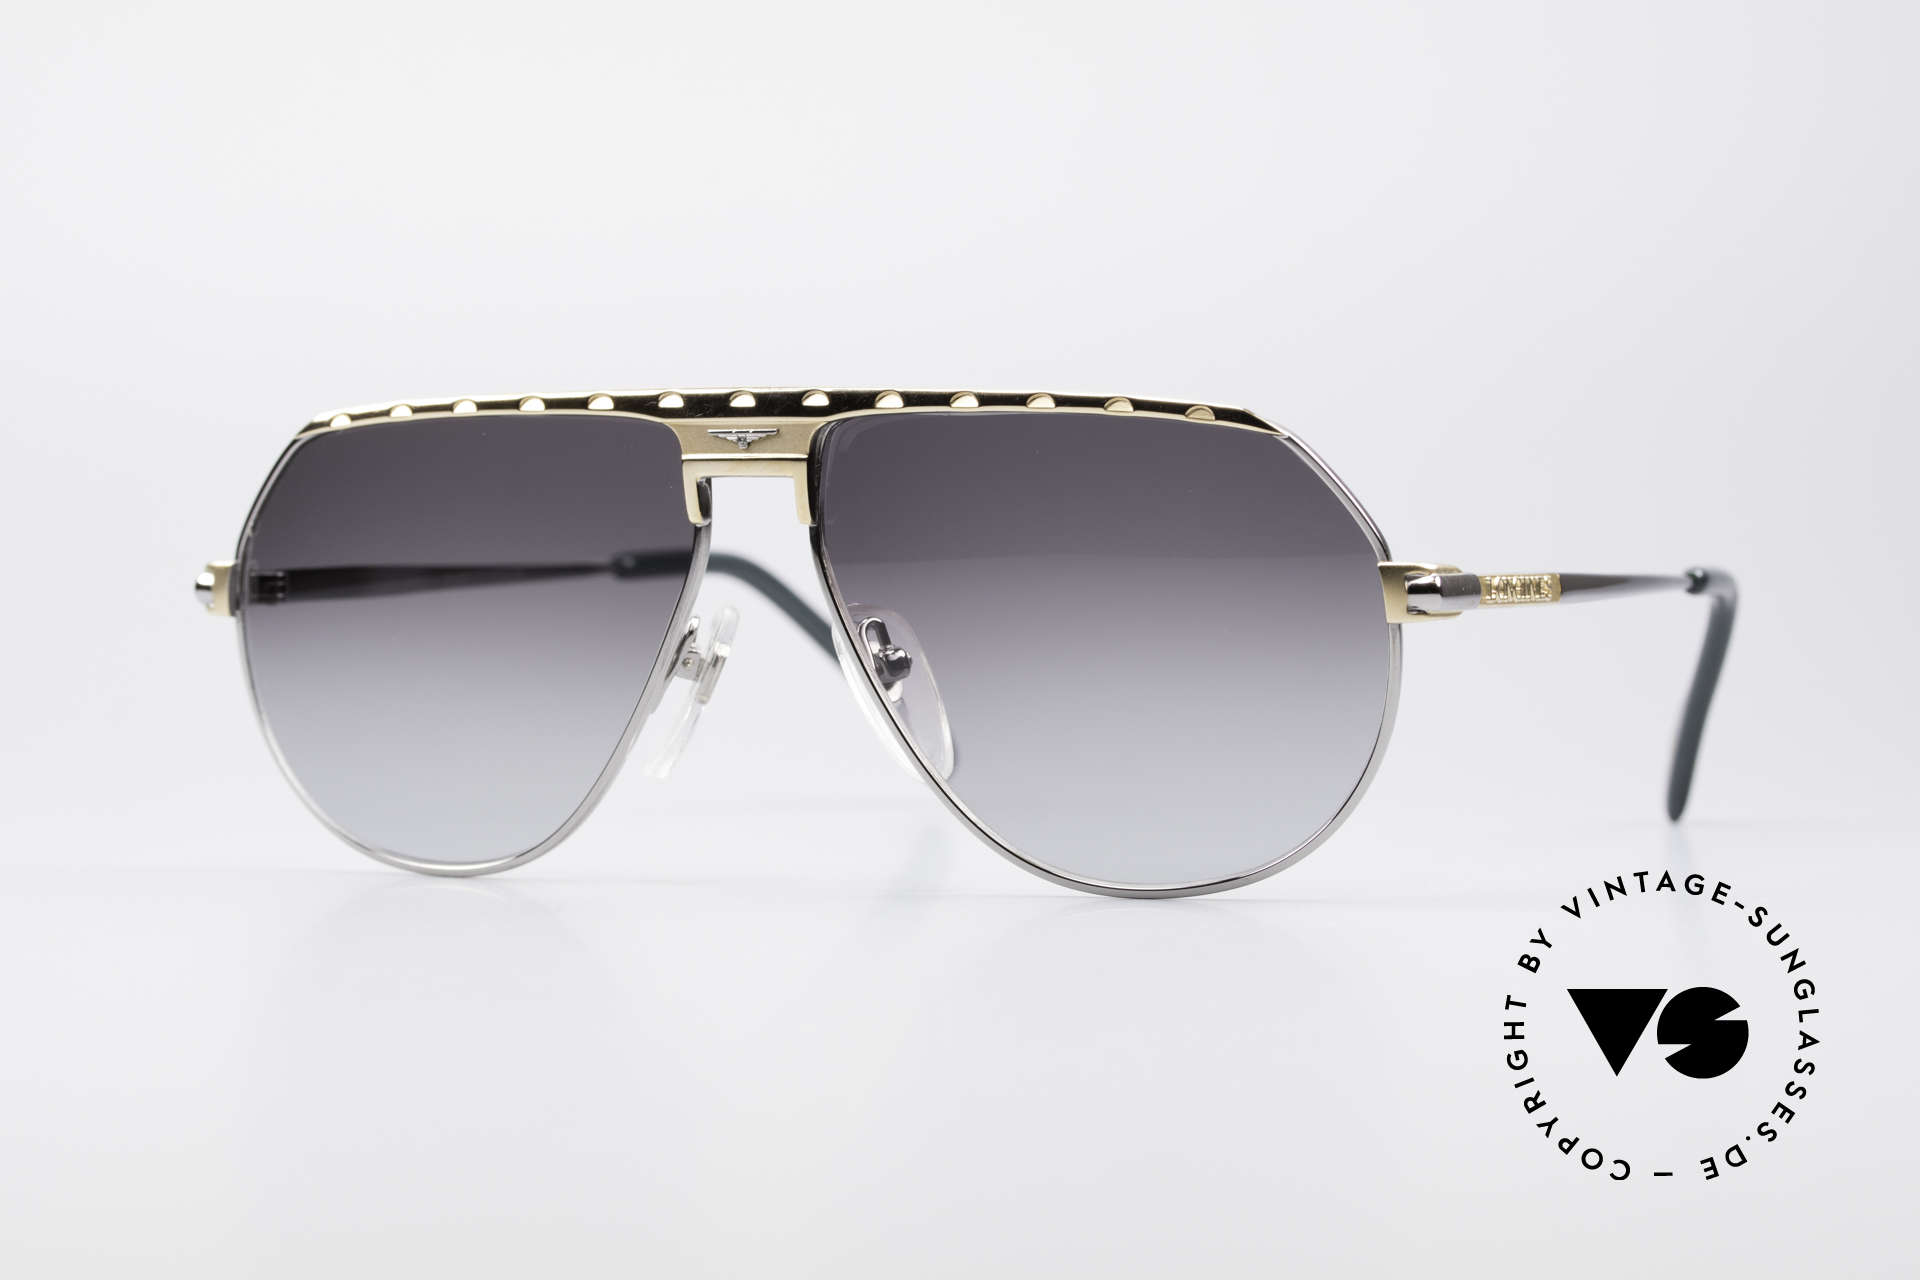 Longines 0151 Rare Titanium 80's Sunglasses, premium vintage 80's designer shades by Longines, Made for Men